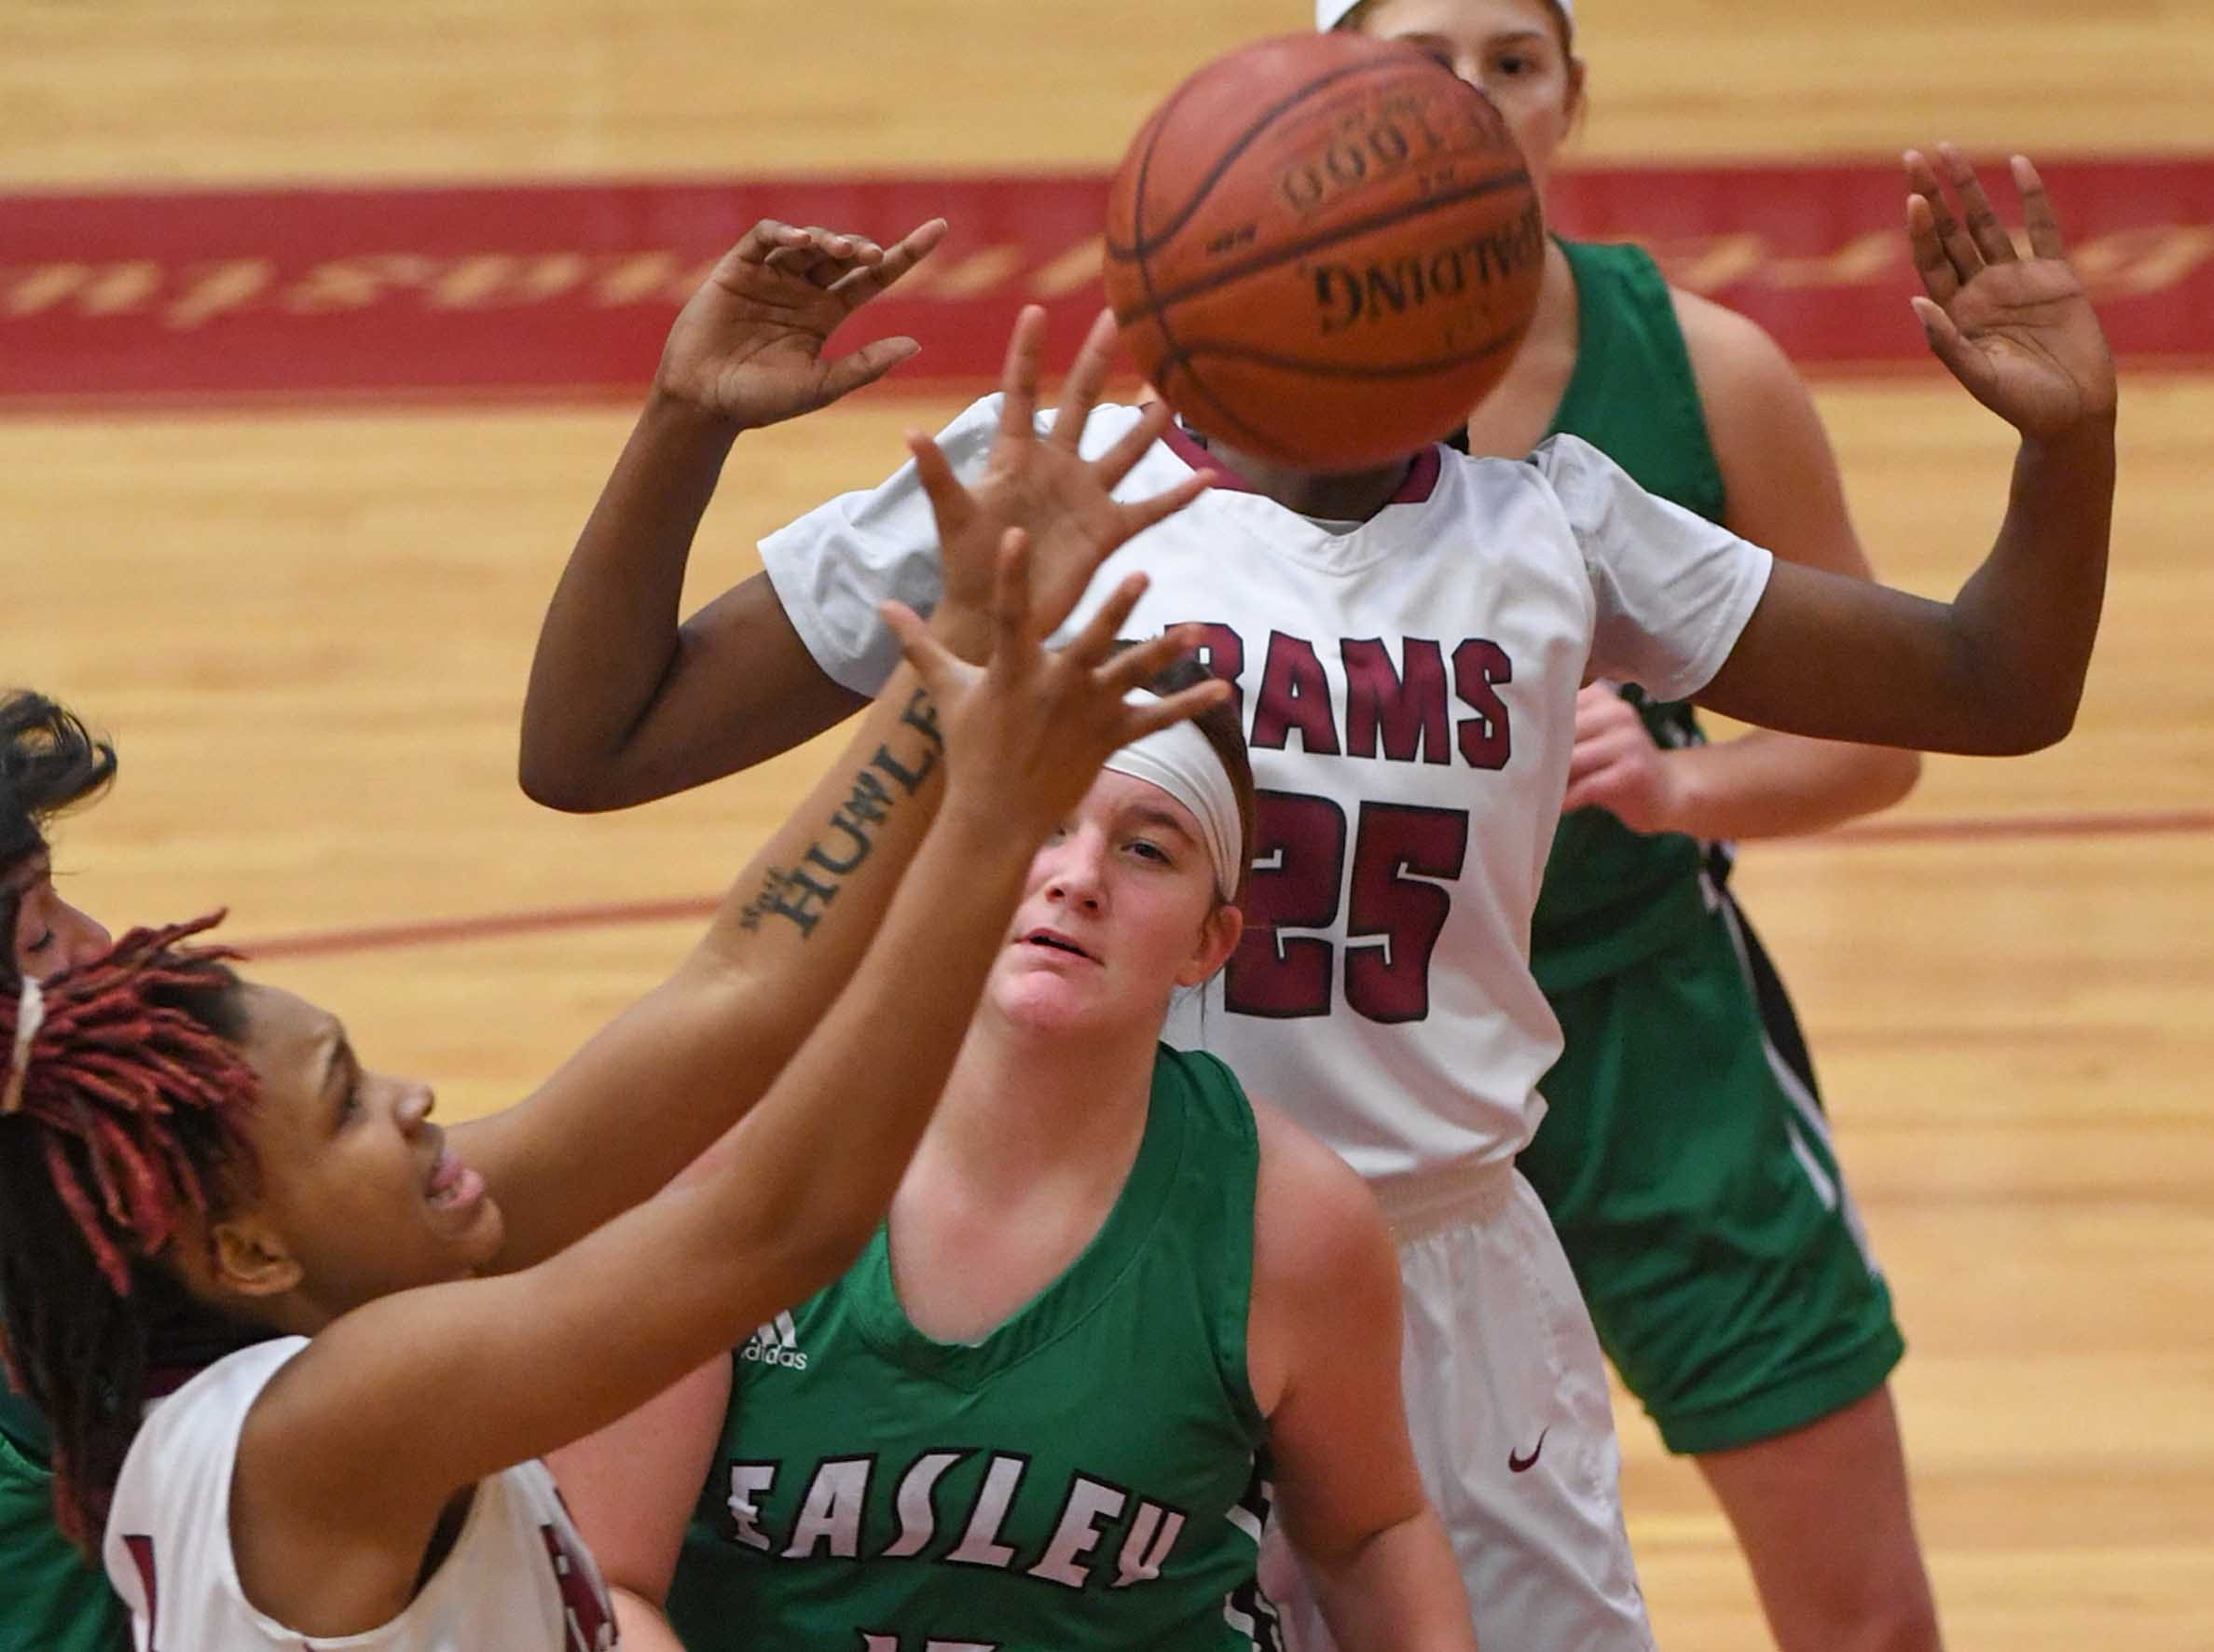 Westside freshman Aziyah Bell(4) reaches for a loose ball near teammate Westside junior Keyshuna Fair(25) and Easley freshman Kylie Nabors(15) during the third quarter at Westside High School in Anderson on Friday.